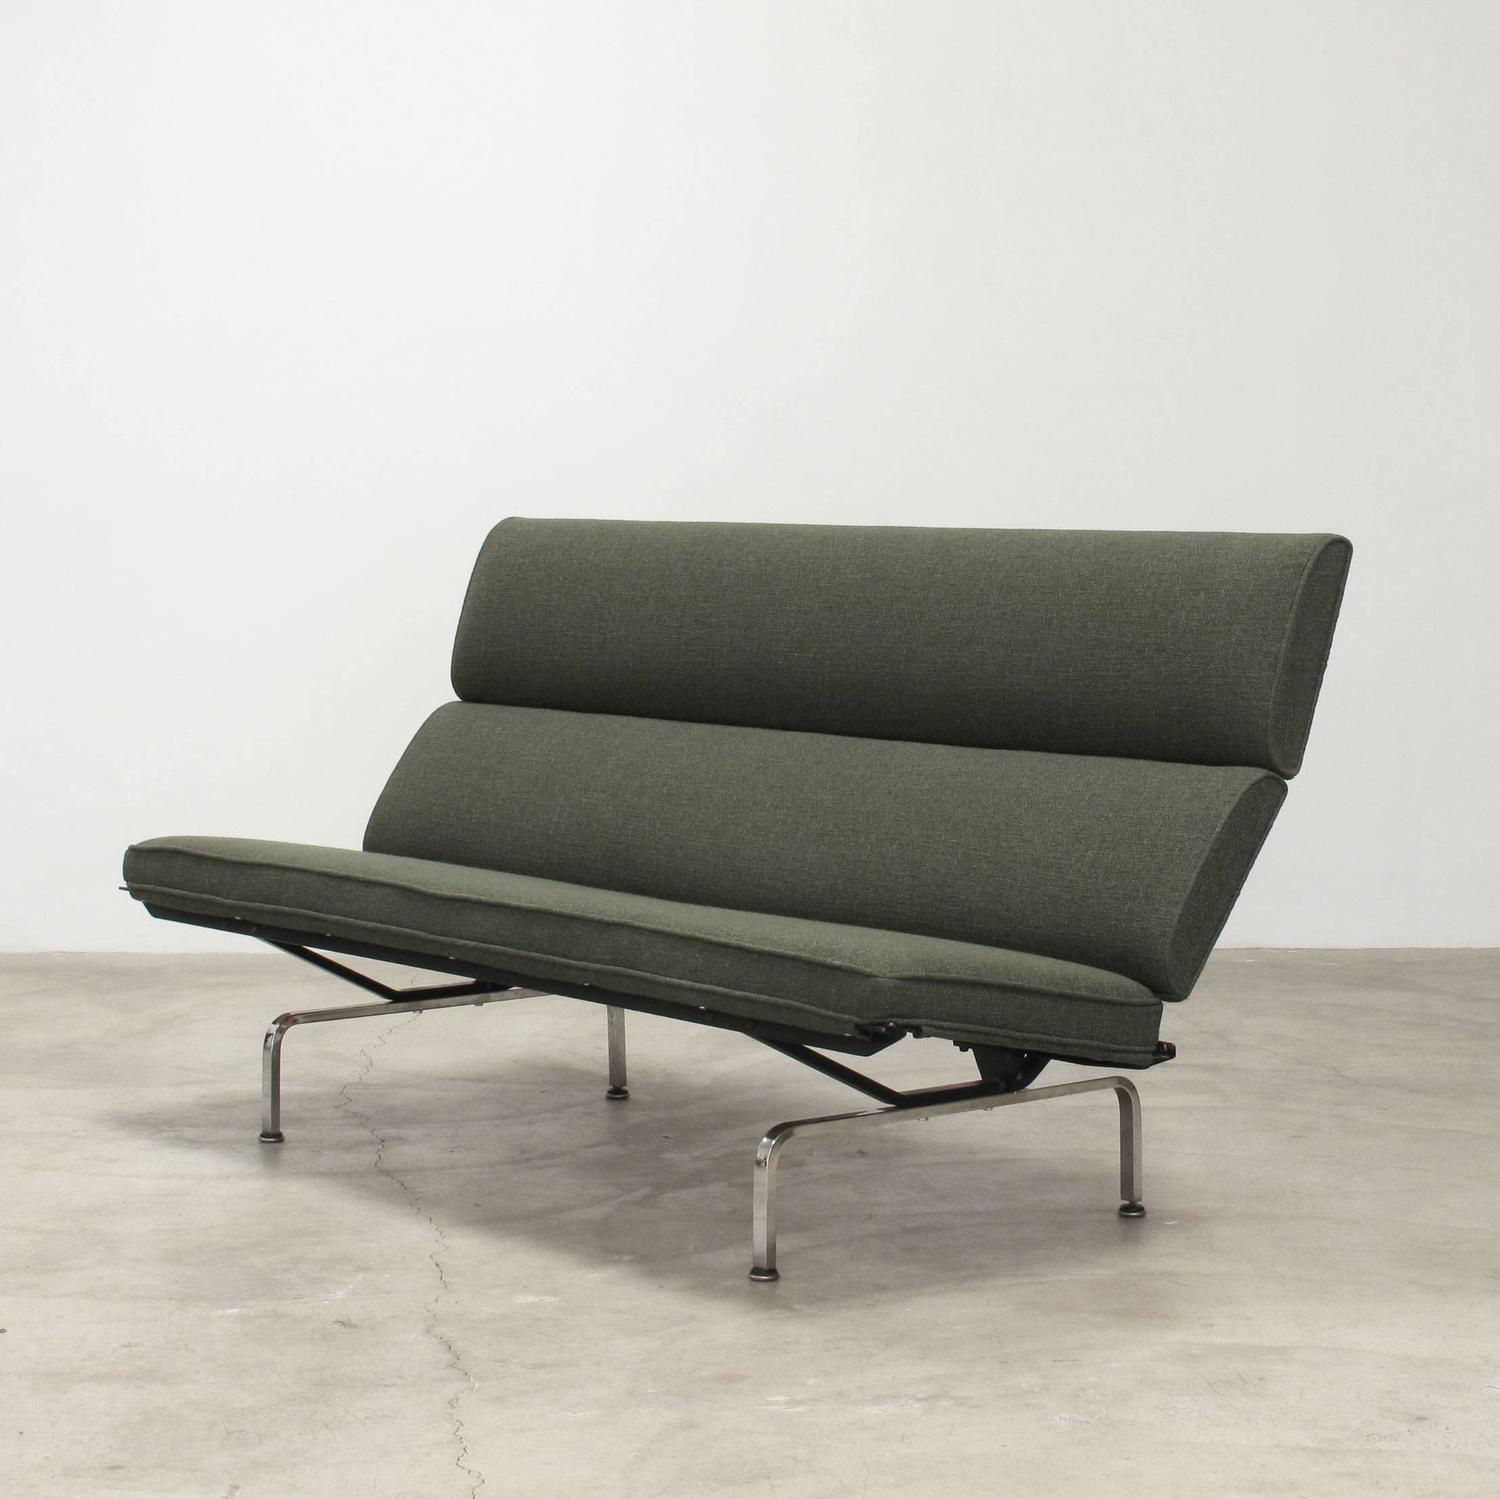 Charles and Ray Eames Sofa Compact, 1960s For Sale at 1stdibs